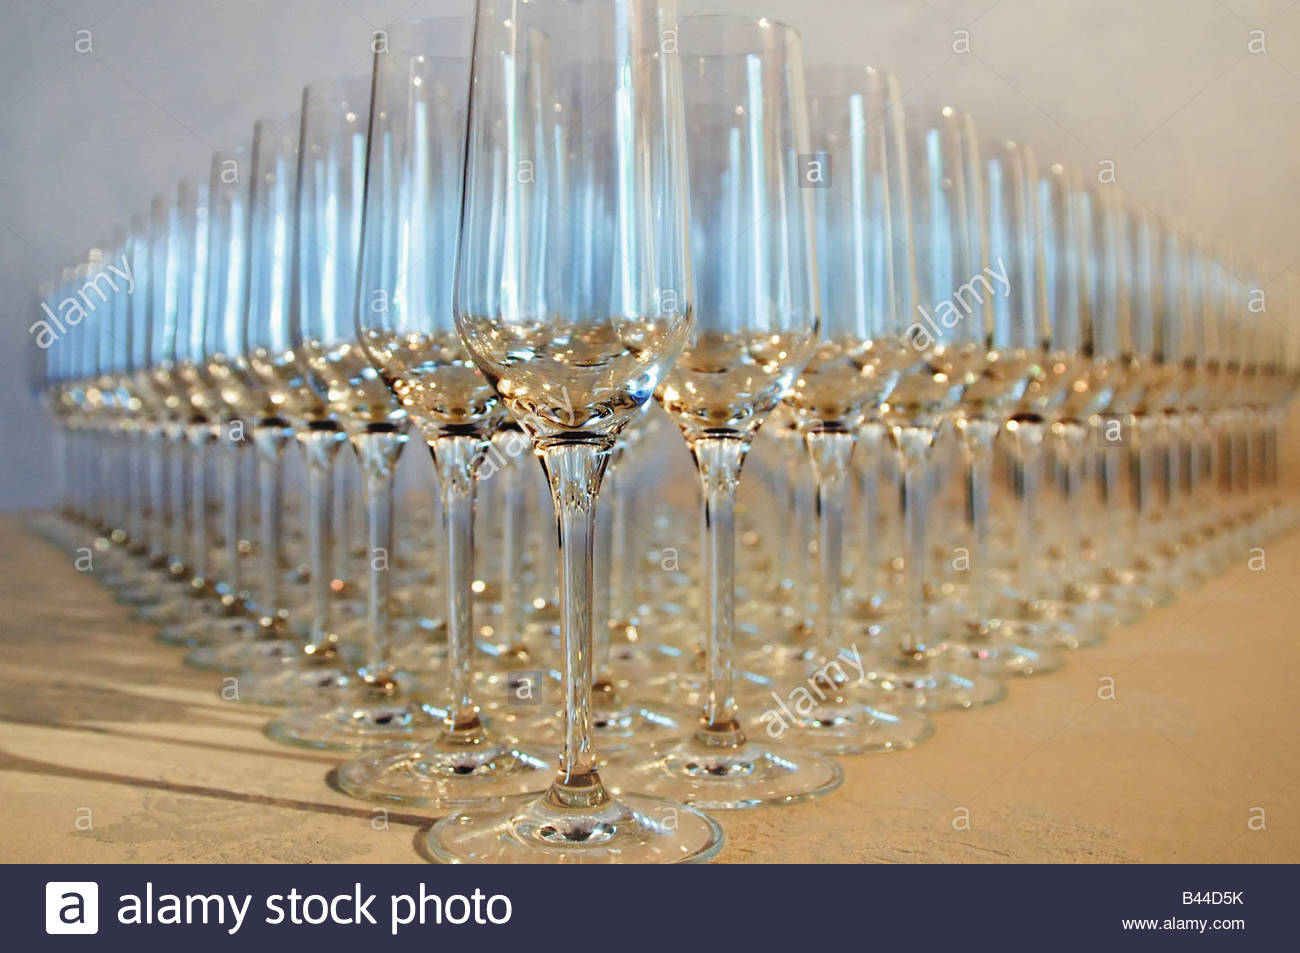 Wine glasses lined up in rows - Stock Image